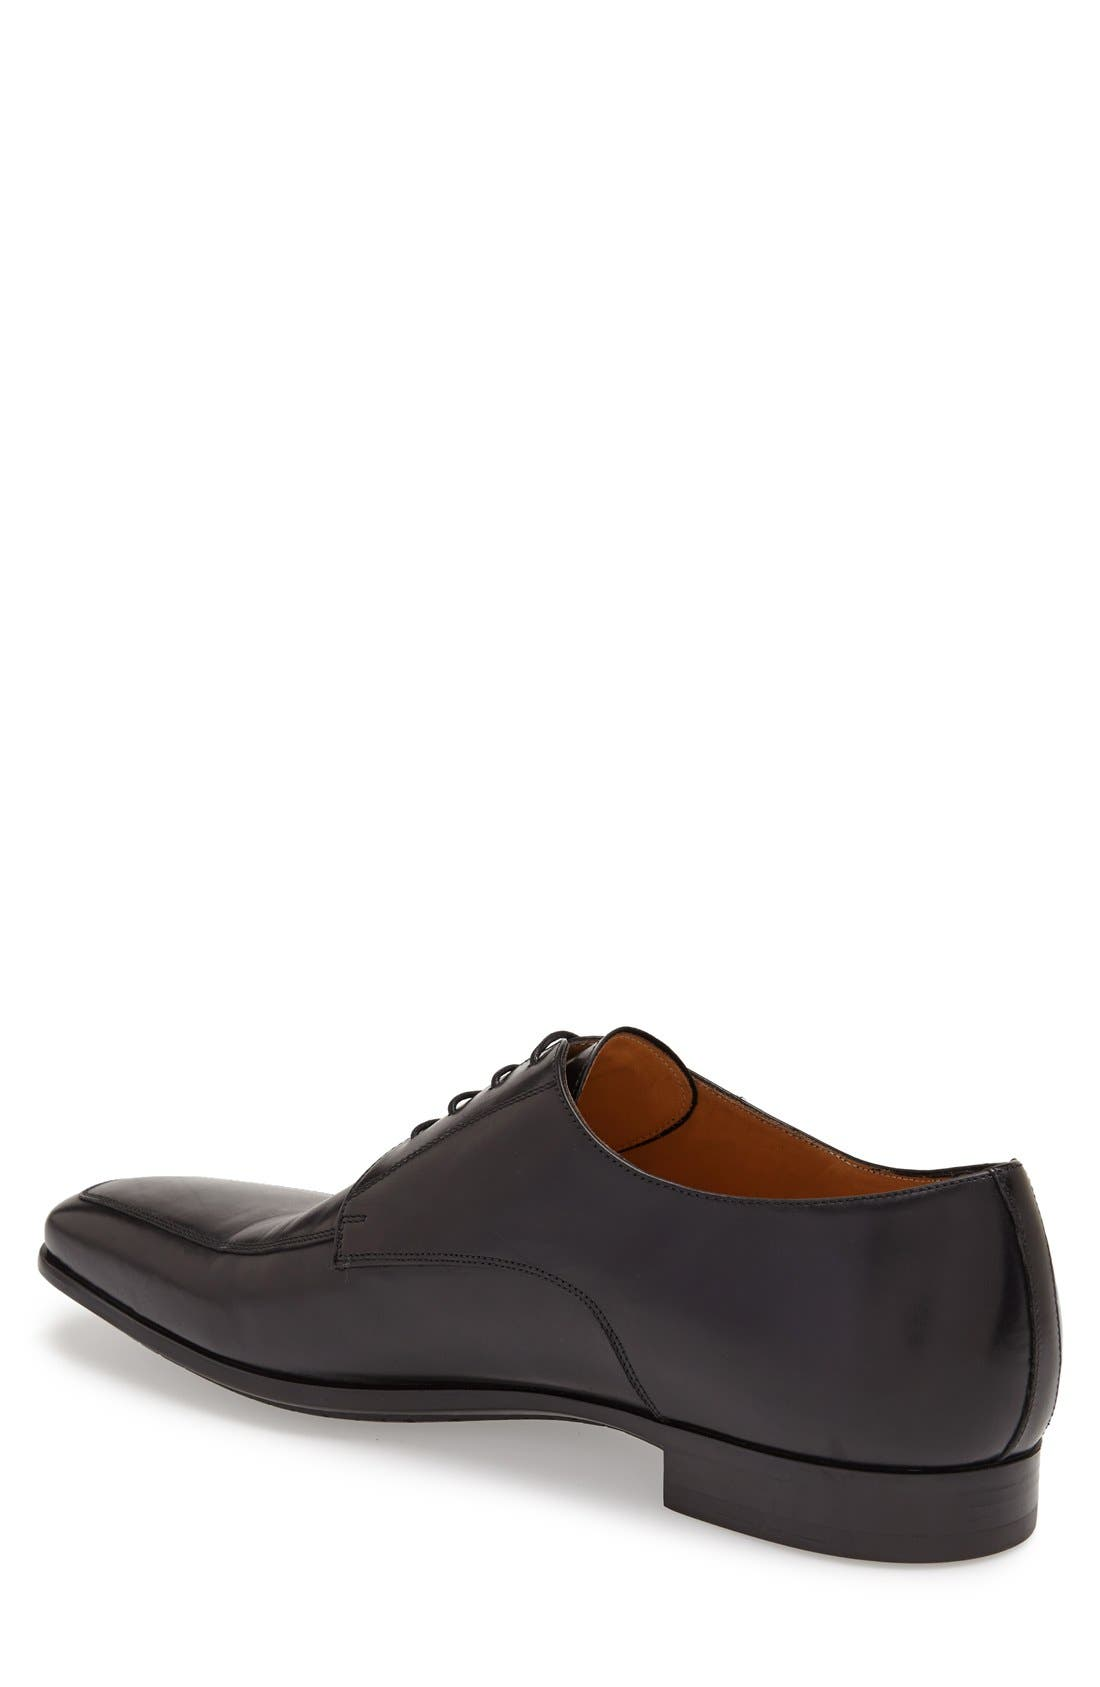 Alternate Image 2  - Santoni 'Prichard' Apron Toe Derby (Men)